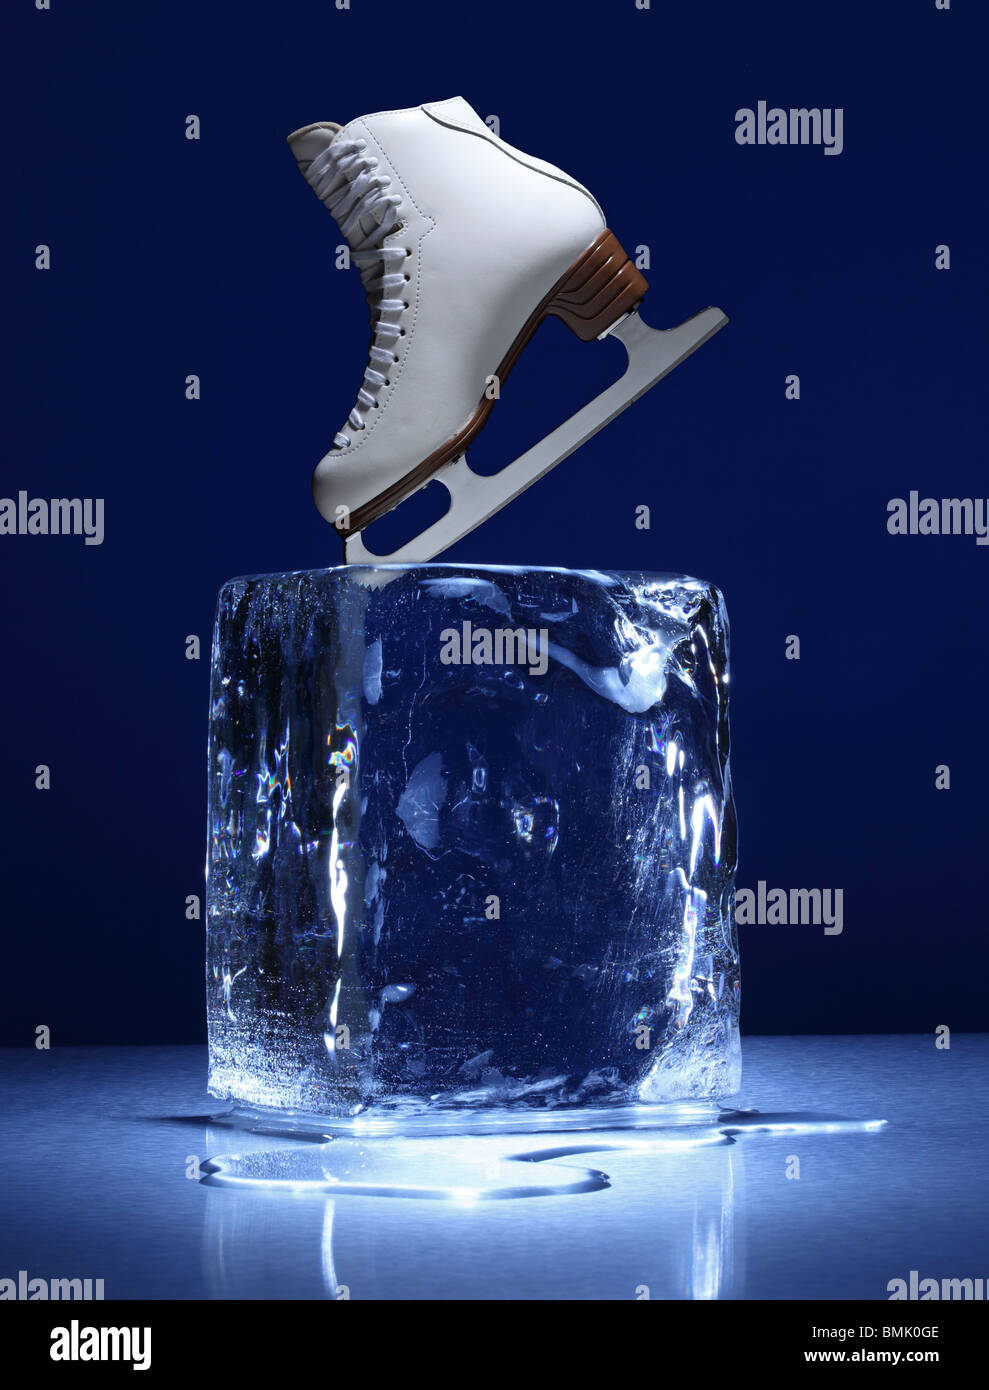 A frozen block of ice with a white ice skate on a metal surface - Stock Image